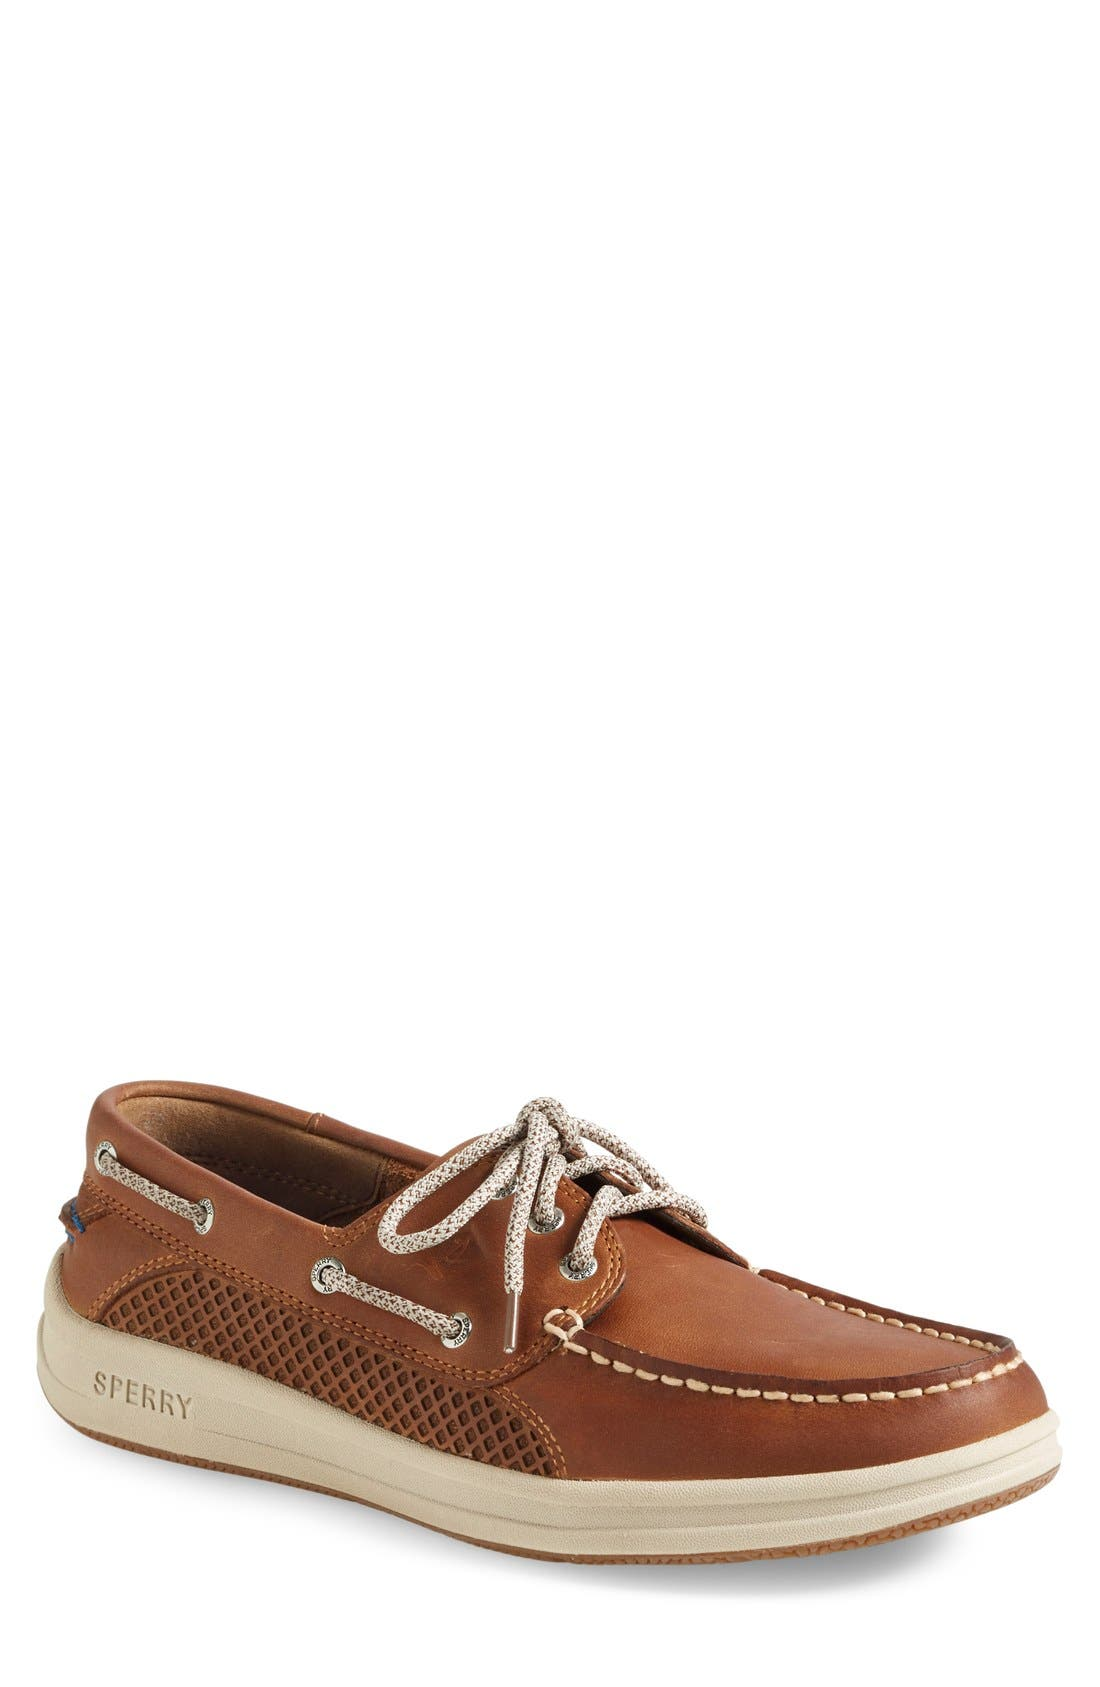 'Gamefish' Boat Shoe,                             Main thumbnail 1, color,                             COGNAC LEATHER